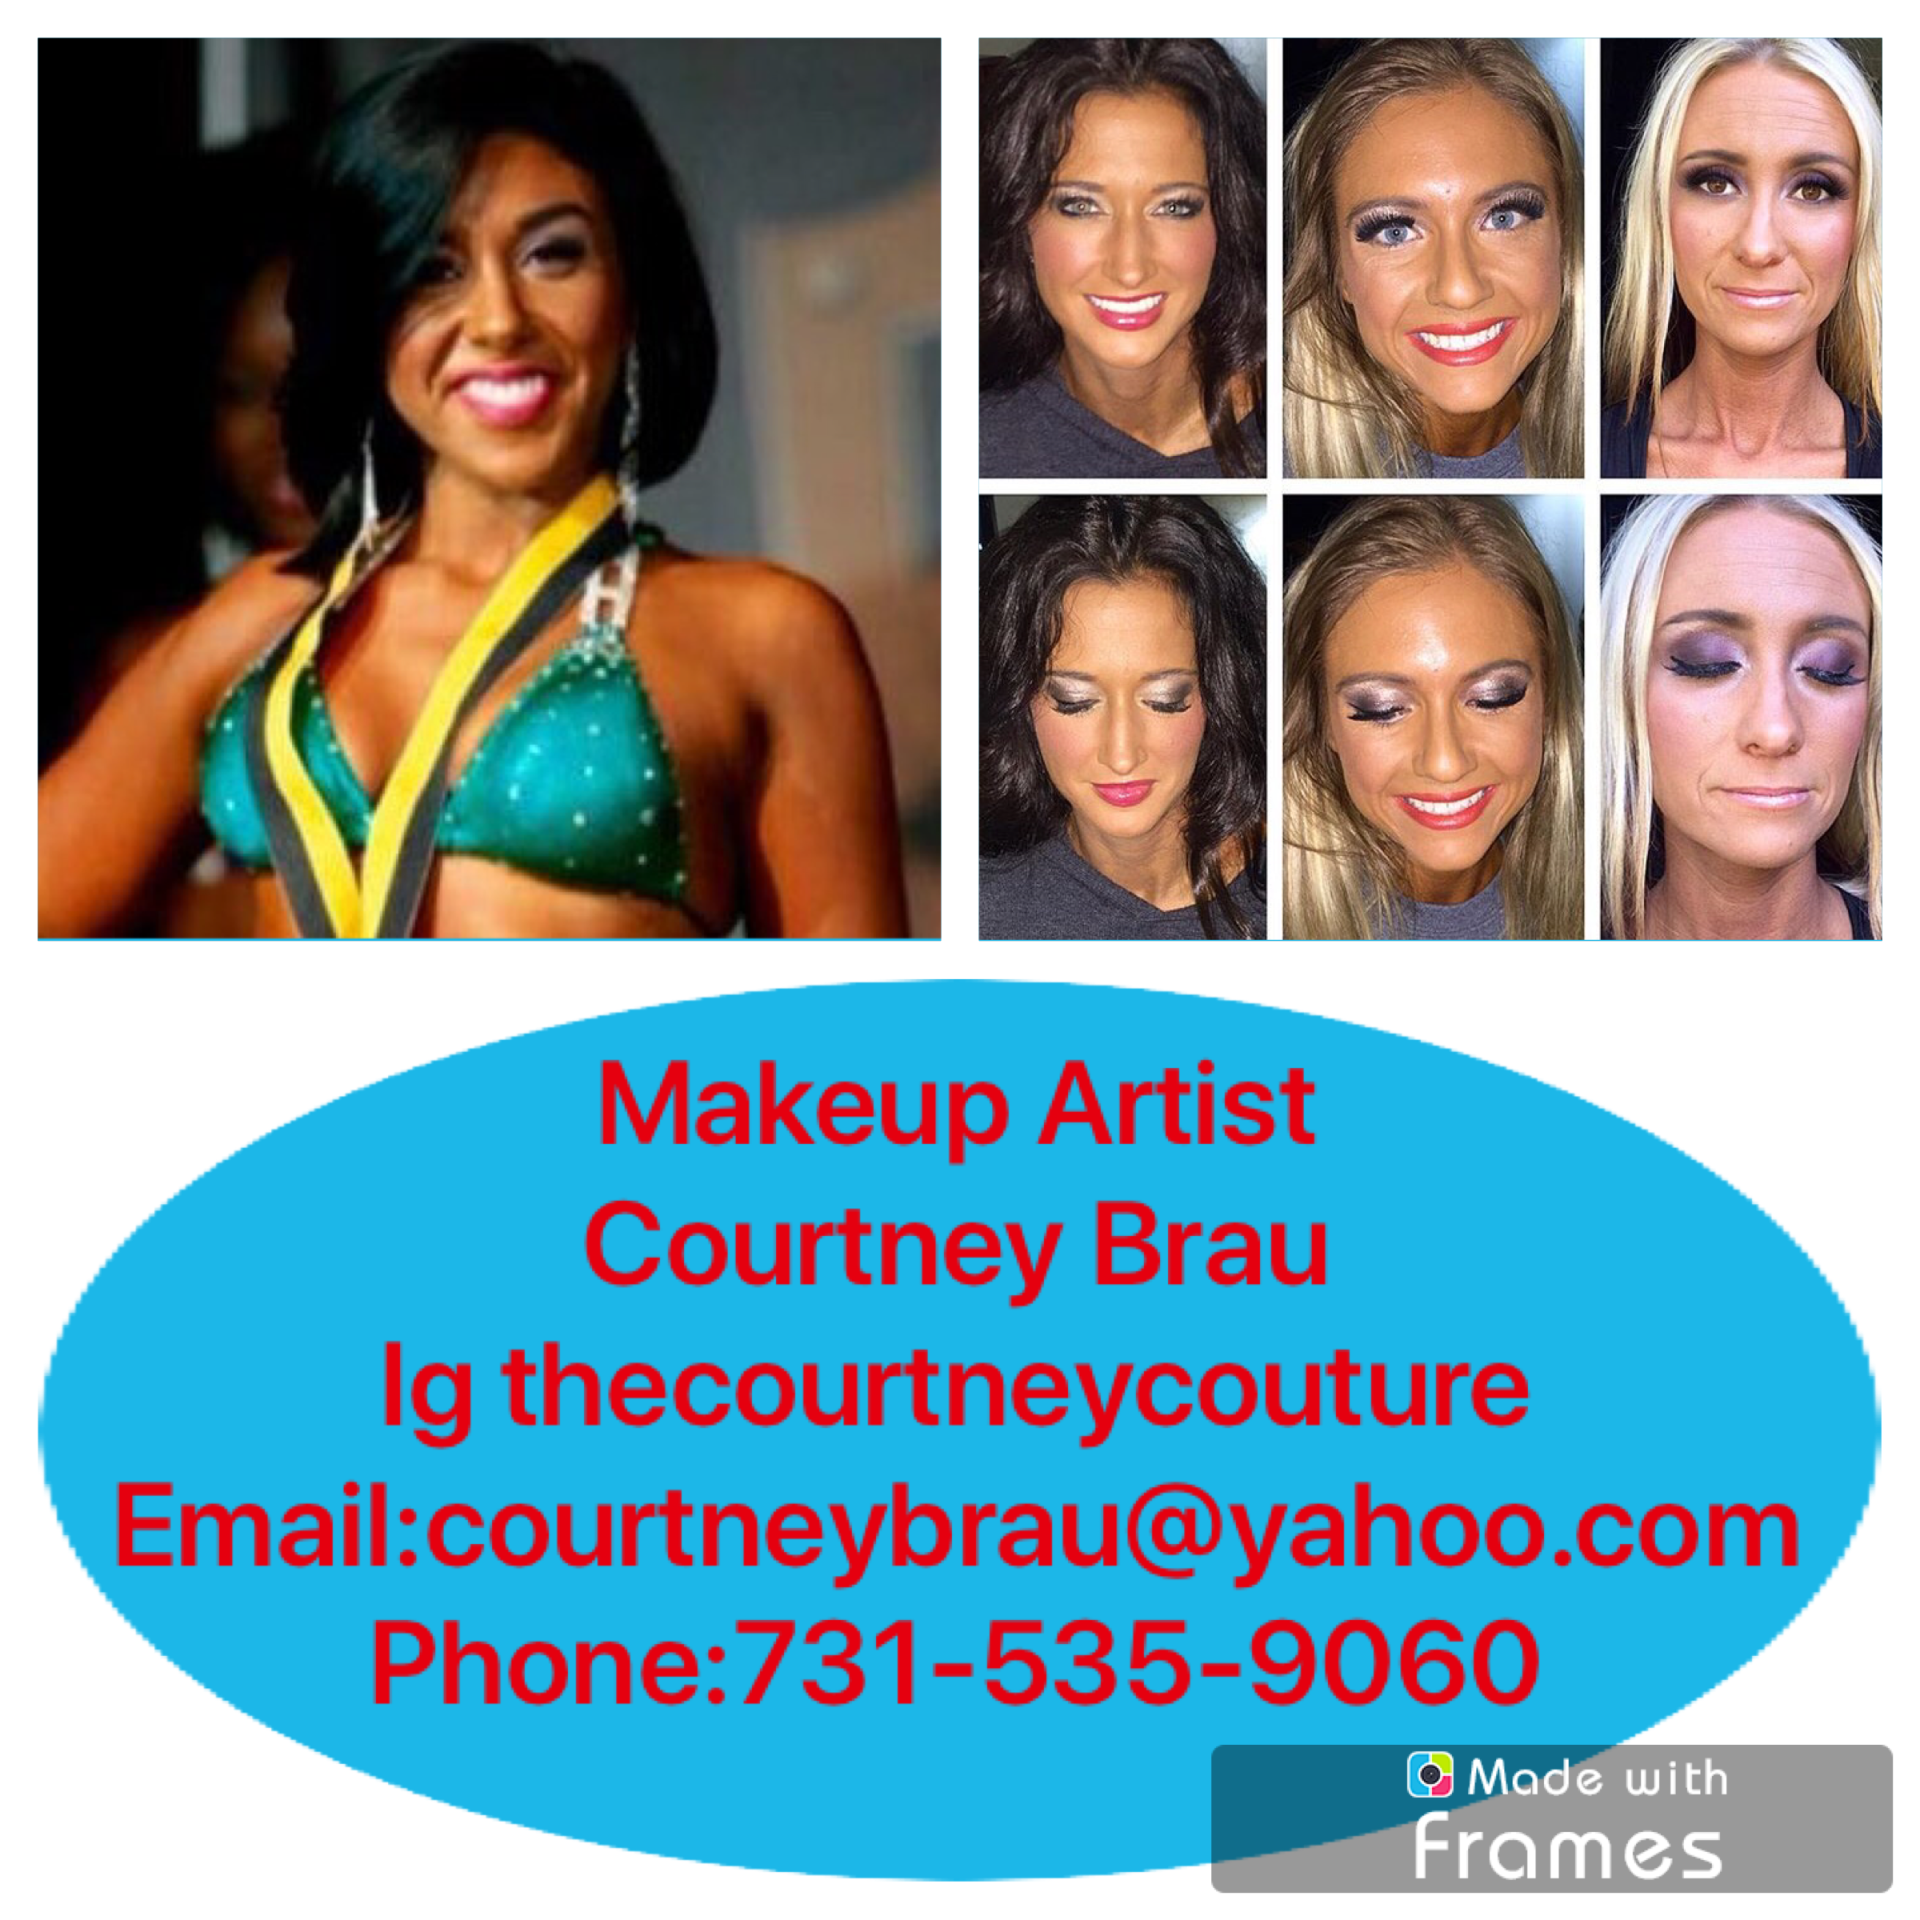 Makeup Artist  Contact Courtney Brau for an Appointment